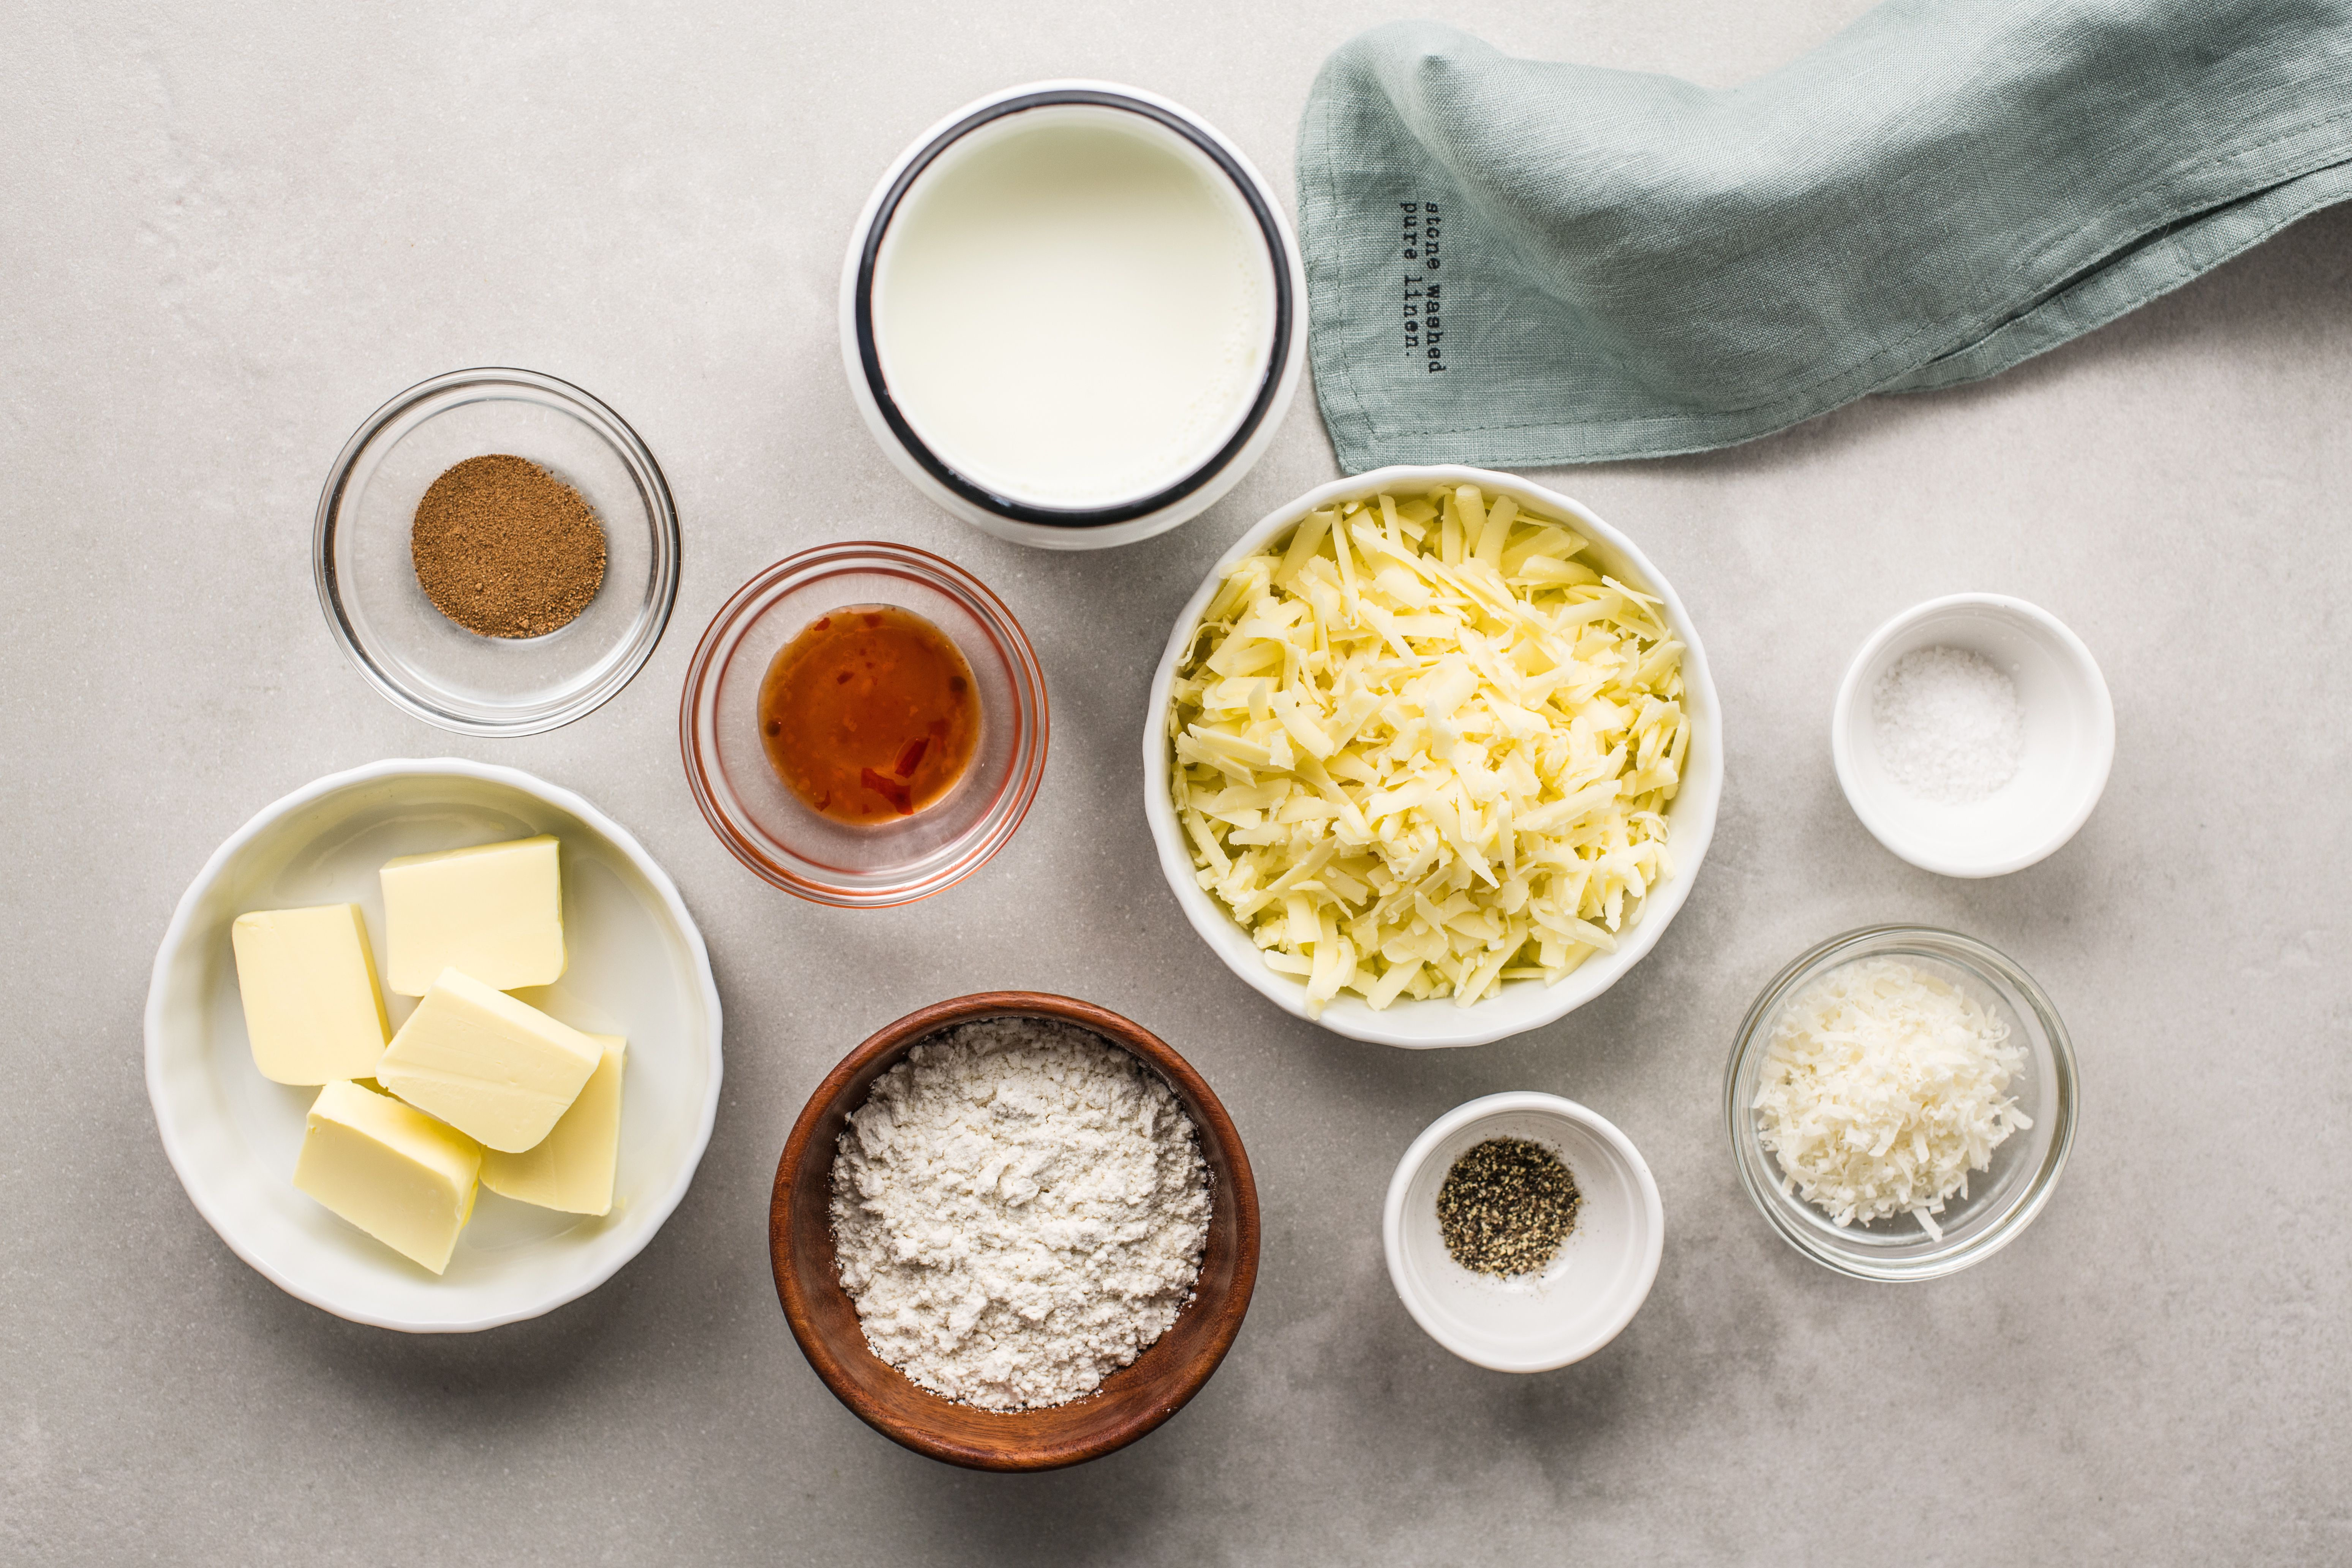 Ingredients for béchamel sauce with cheese